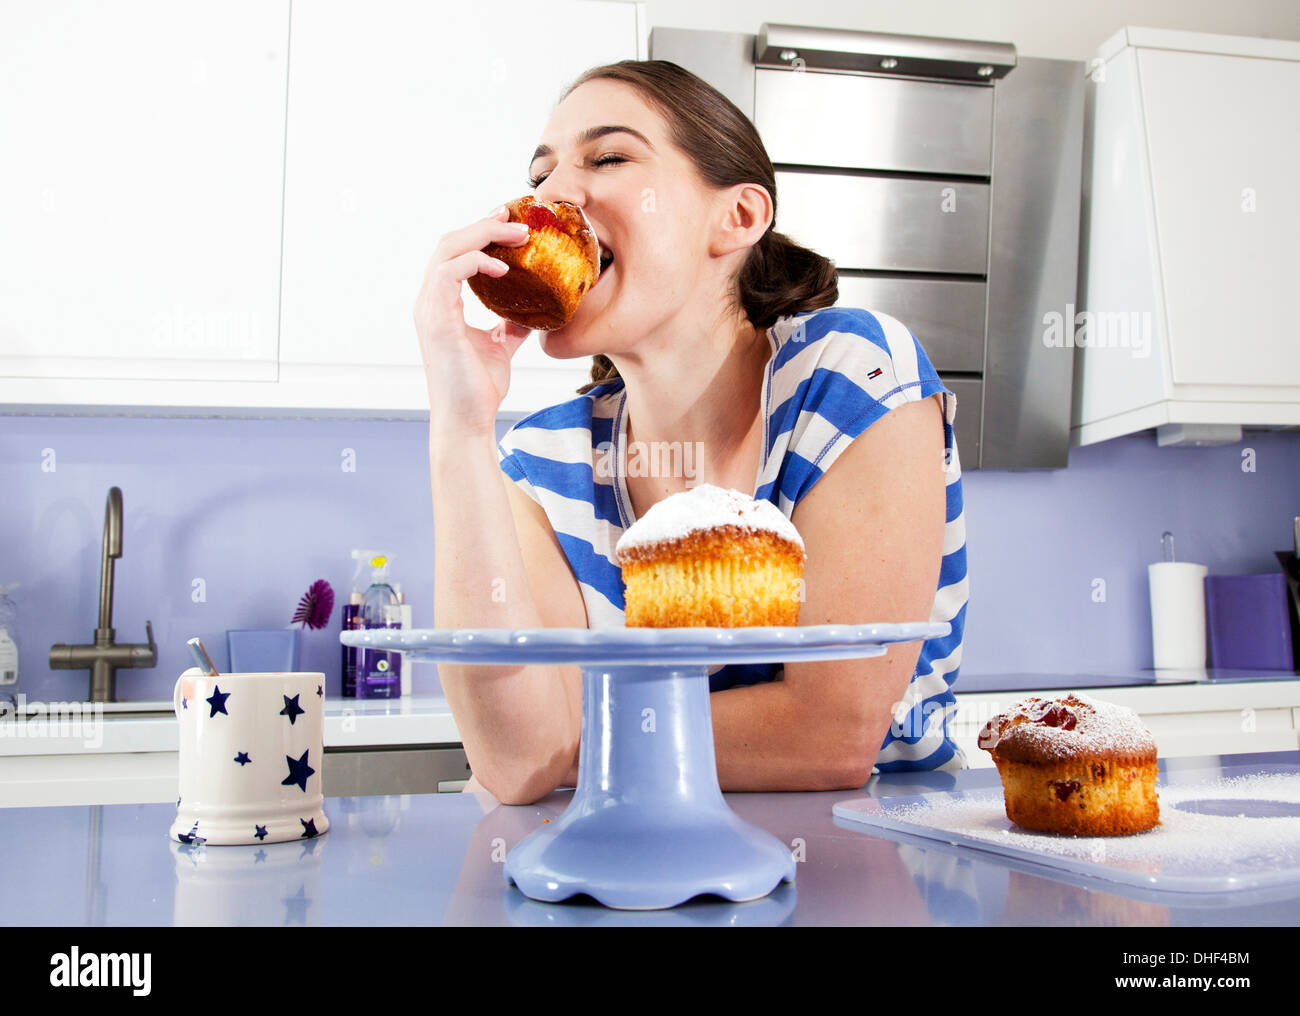 Young woman eating muffin - Stock Image